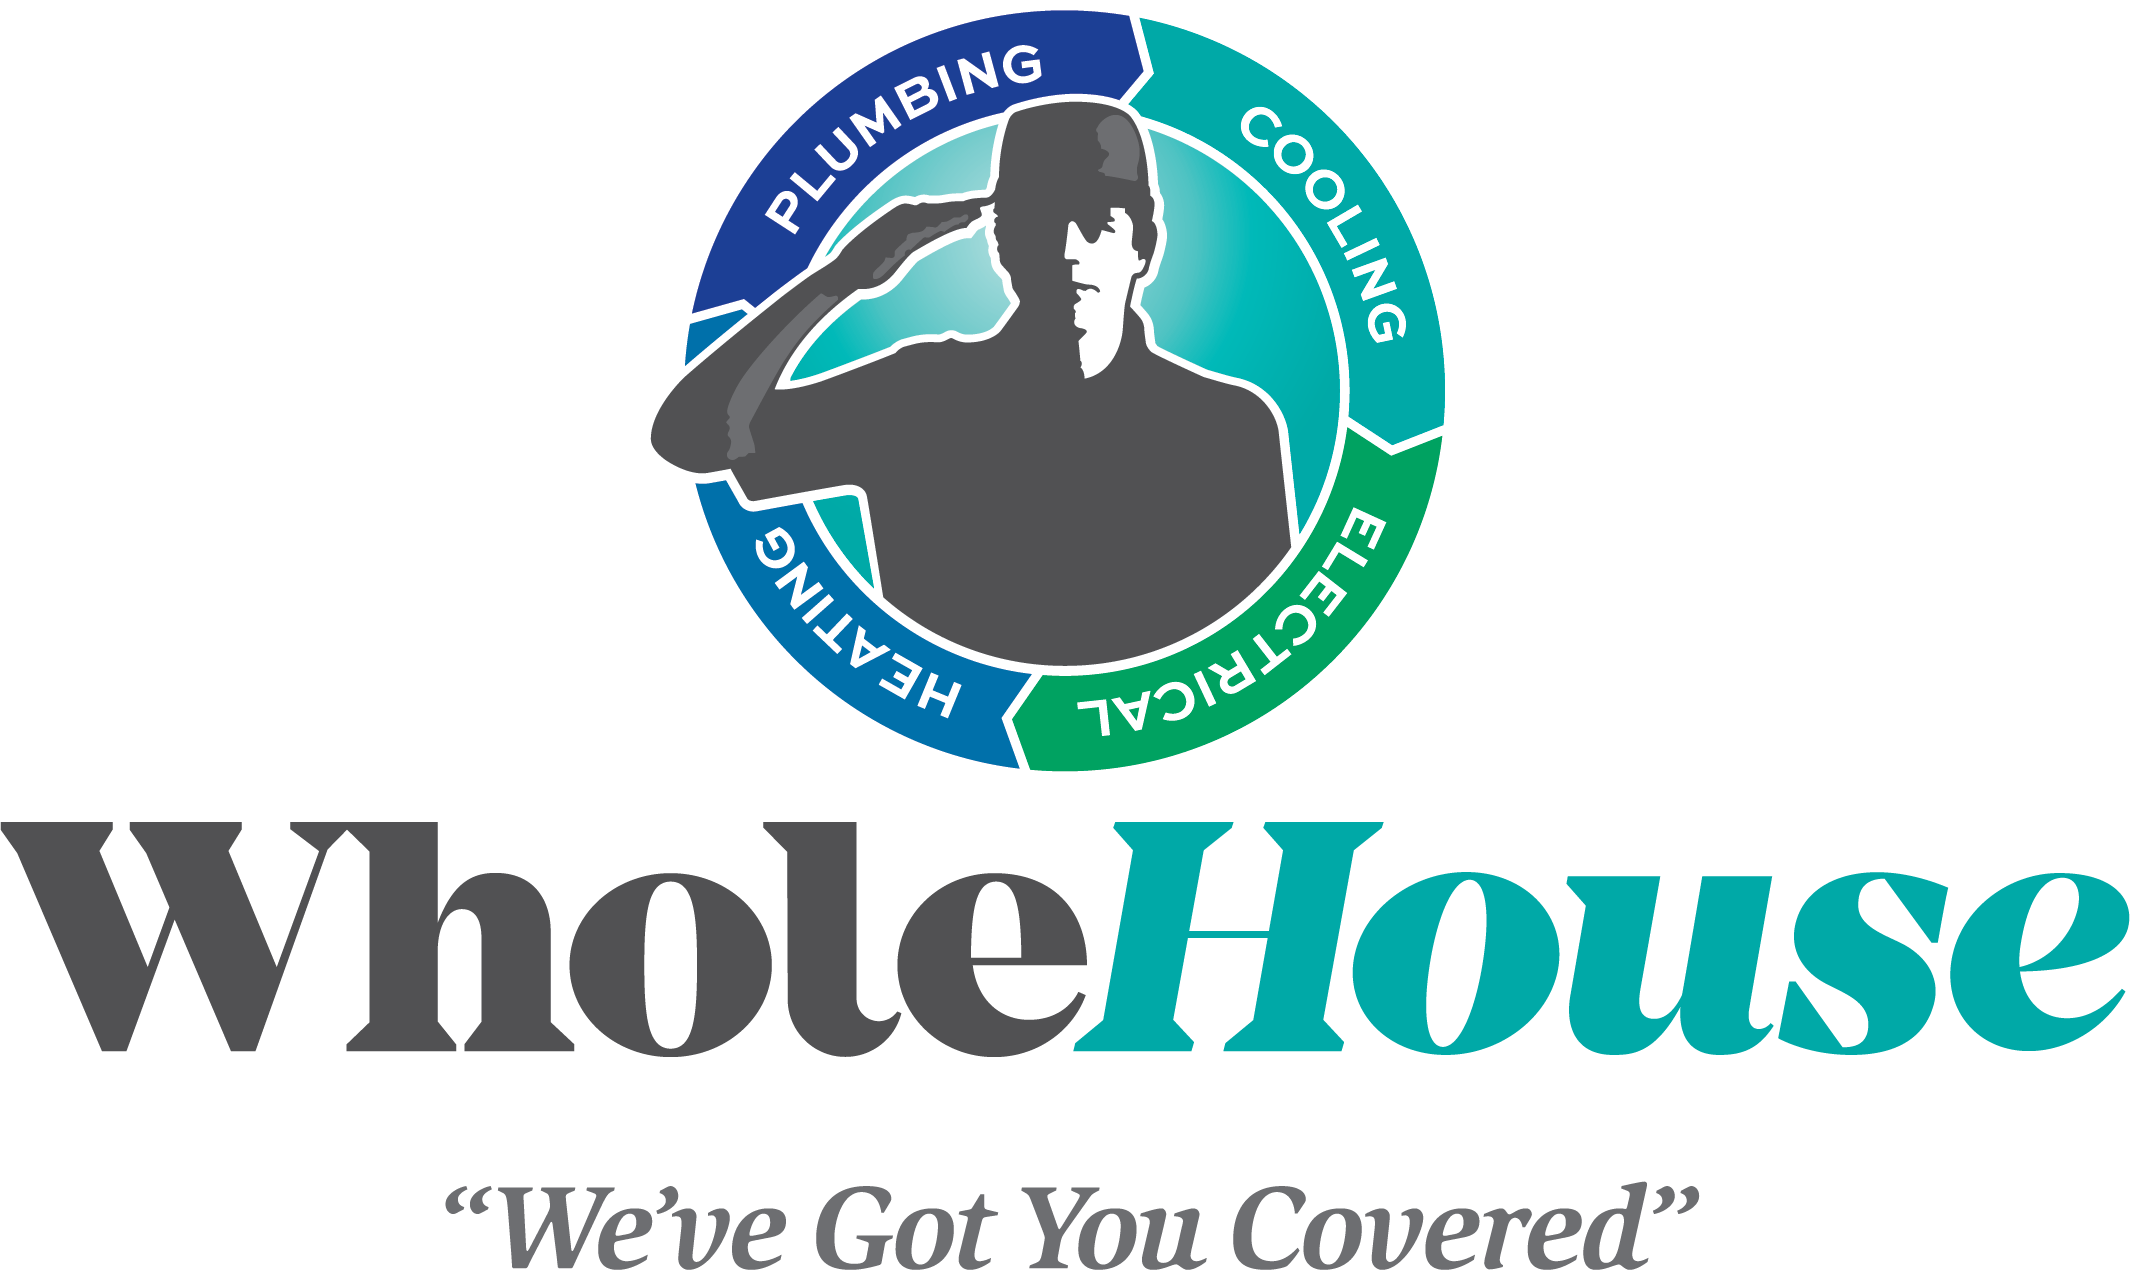 Whole House logo color_f